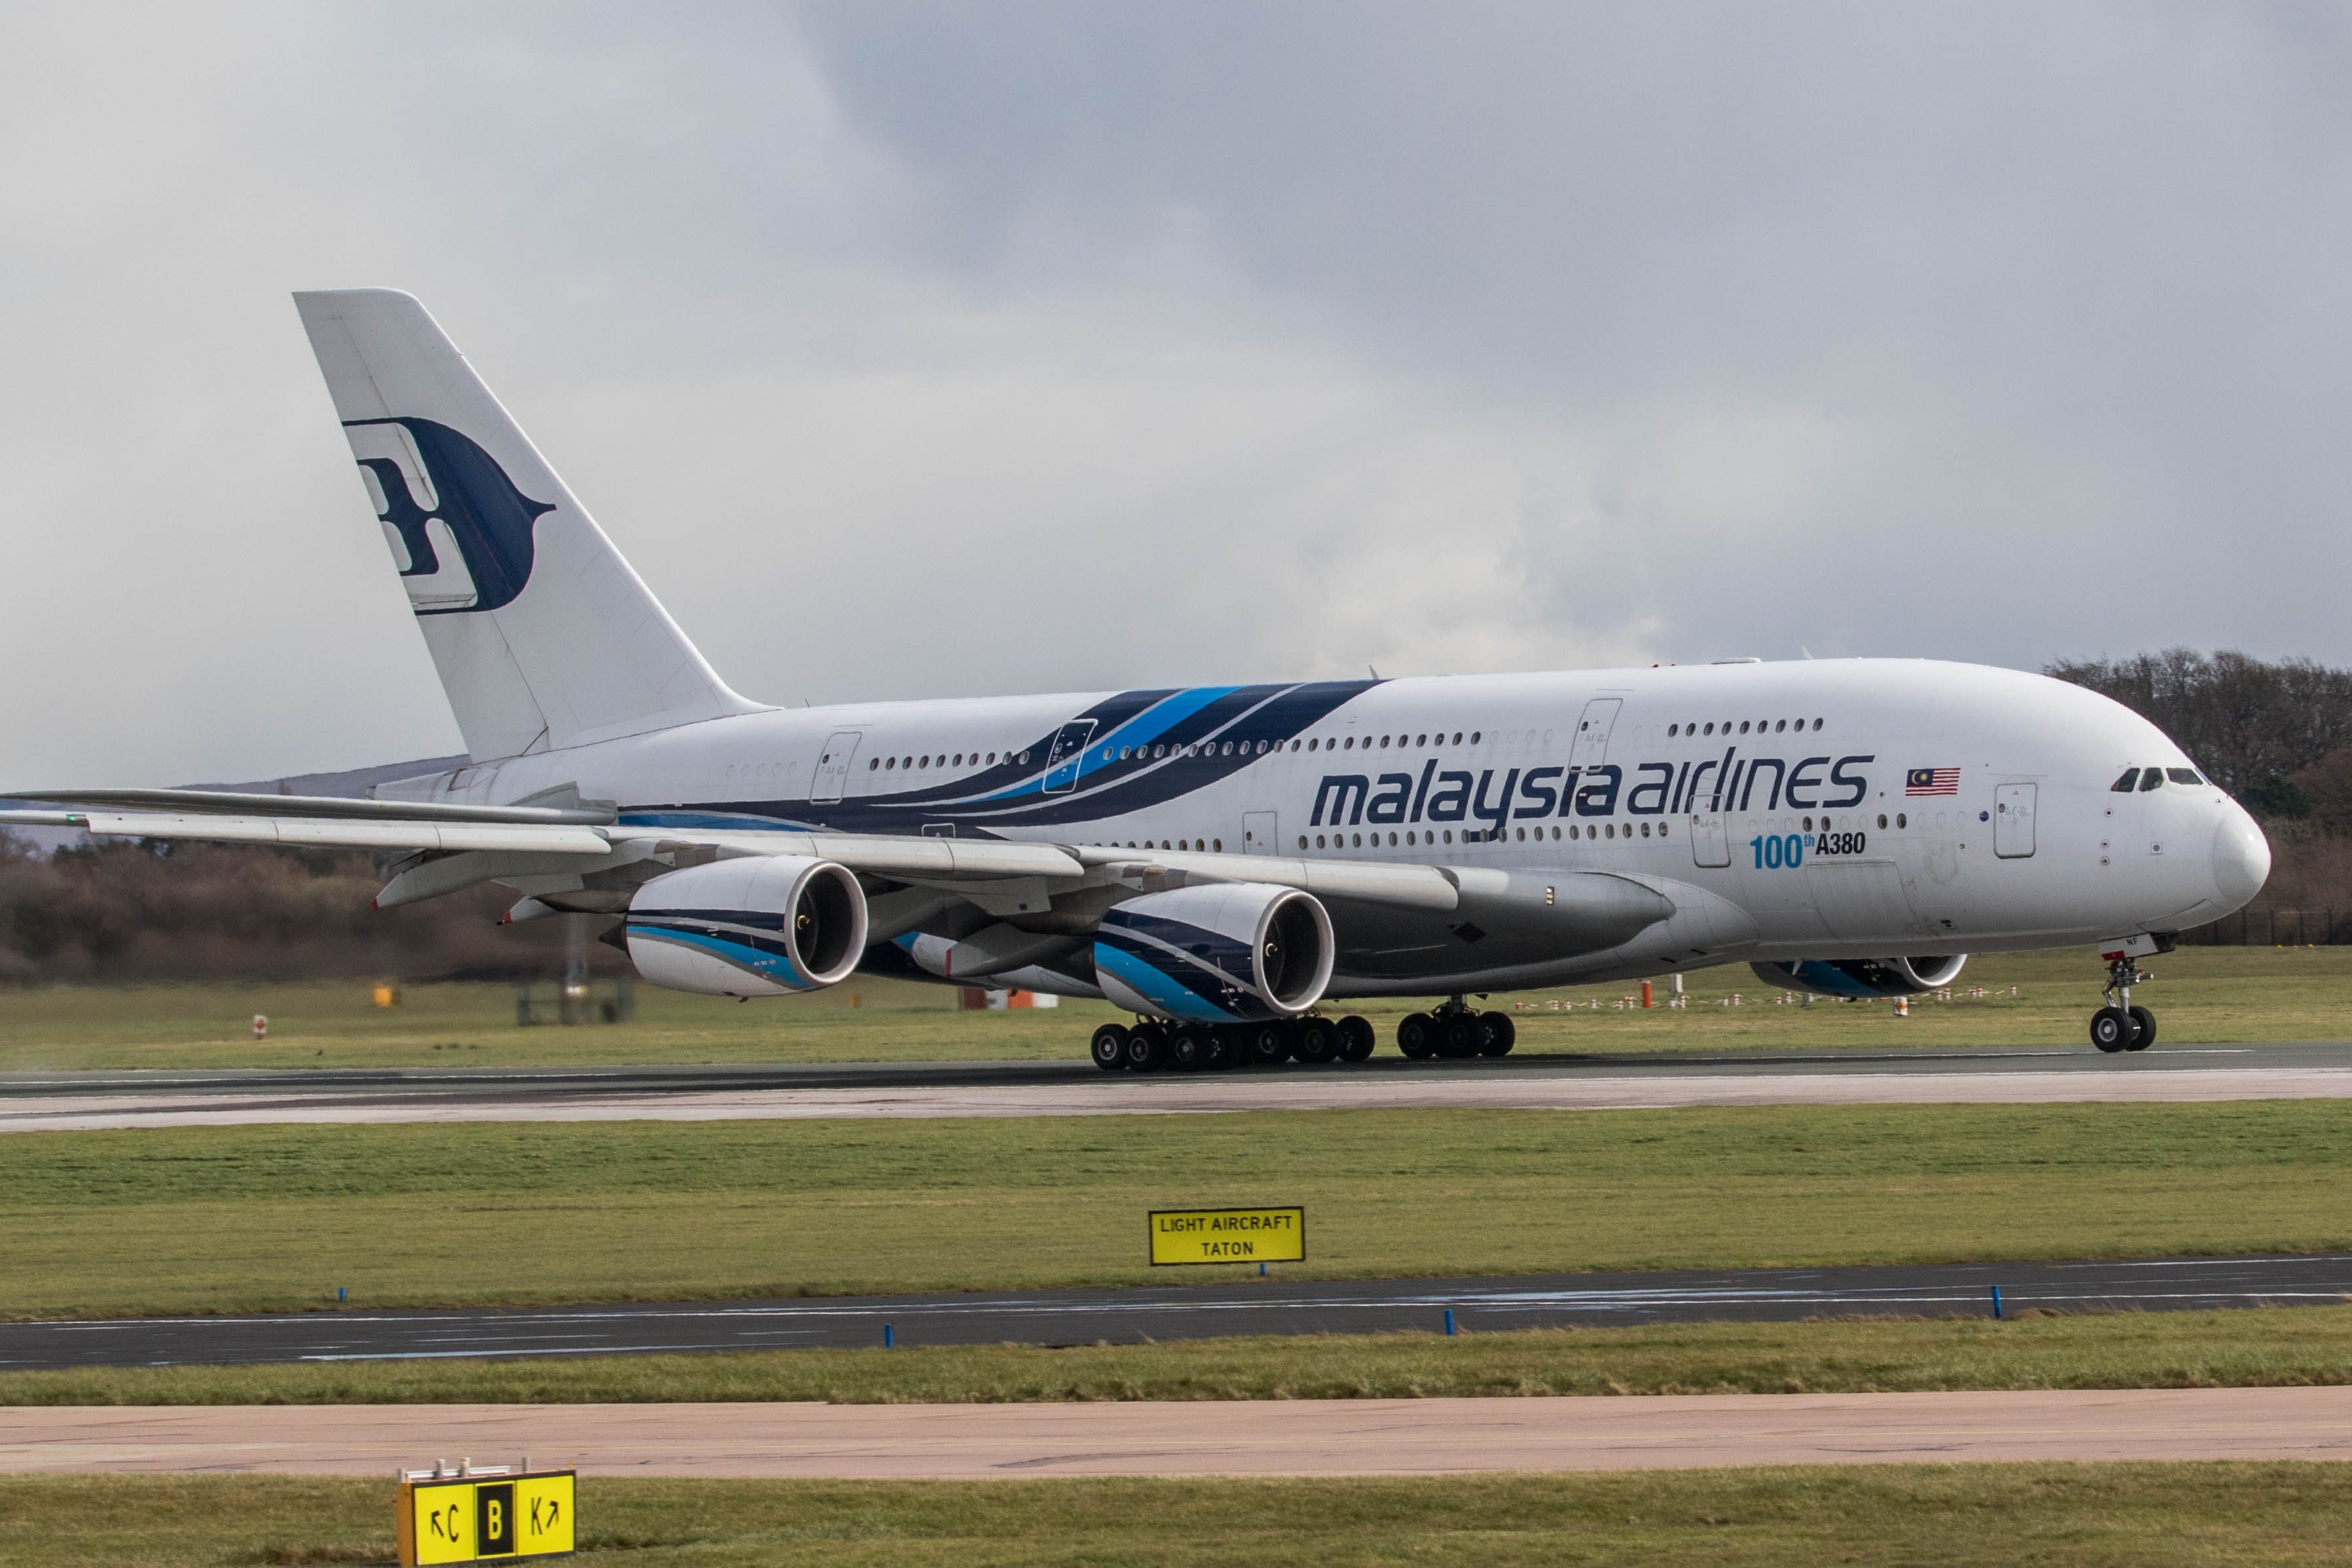 malaysia airlines case study analysis